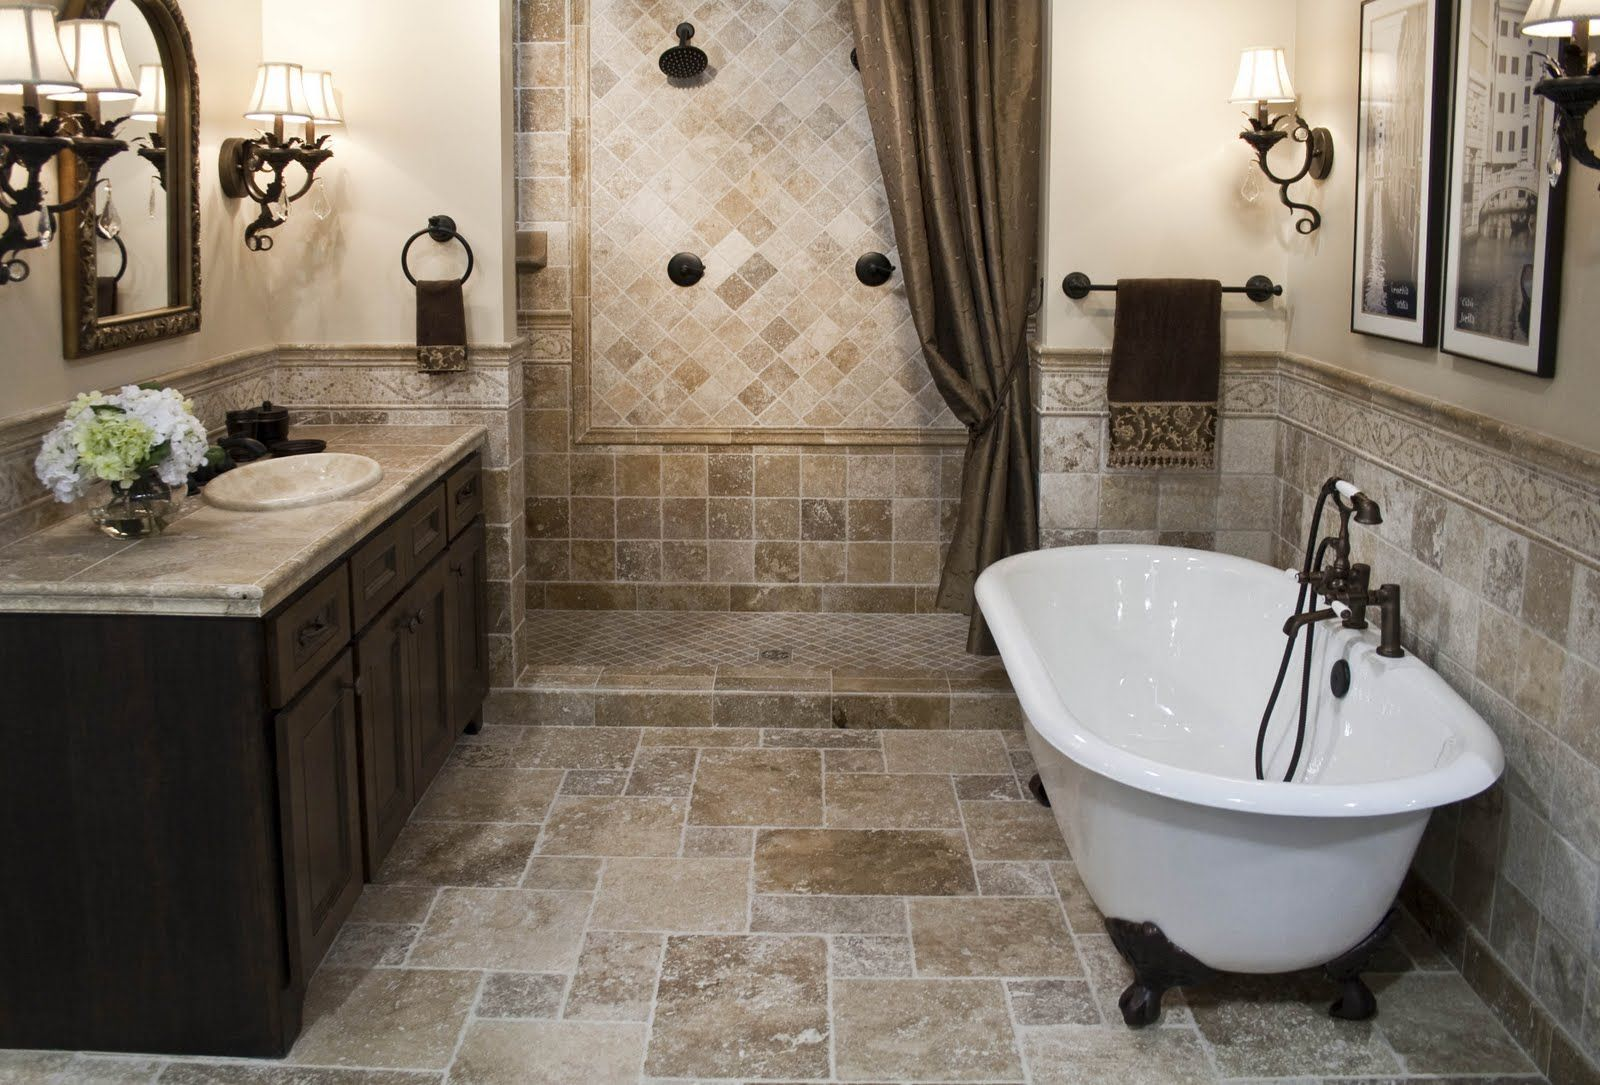 Best Images About Small Bath Ideas On Pinterest Contemporary   Bathrooms  ideas. 17 Best Ideas About Small Bathroom Designs On Pinterest Small